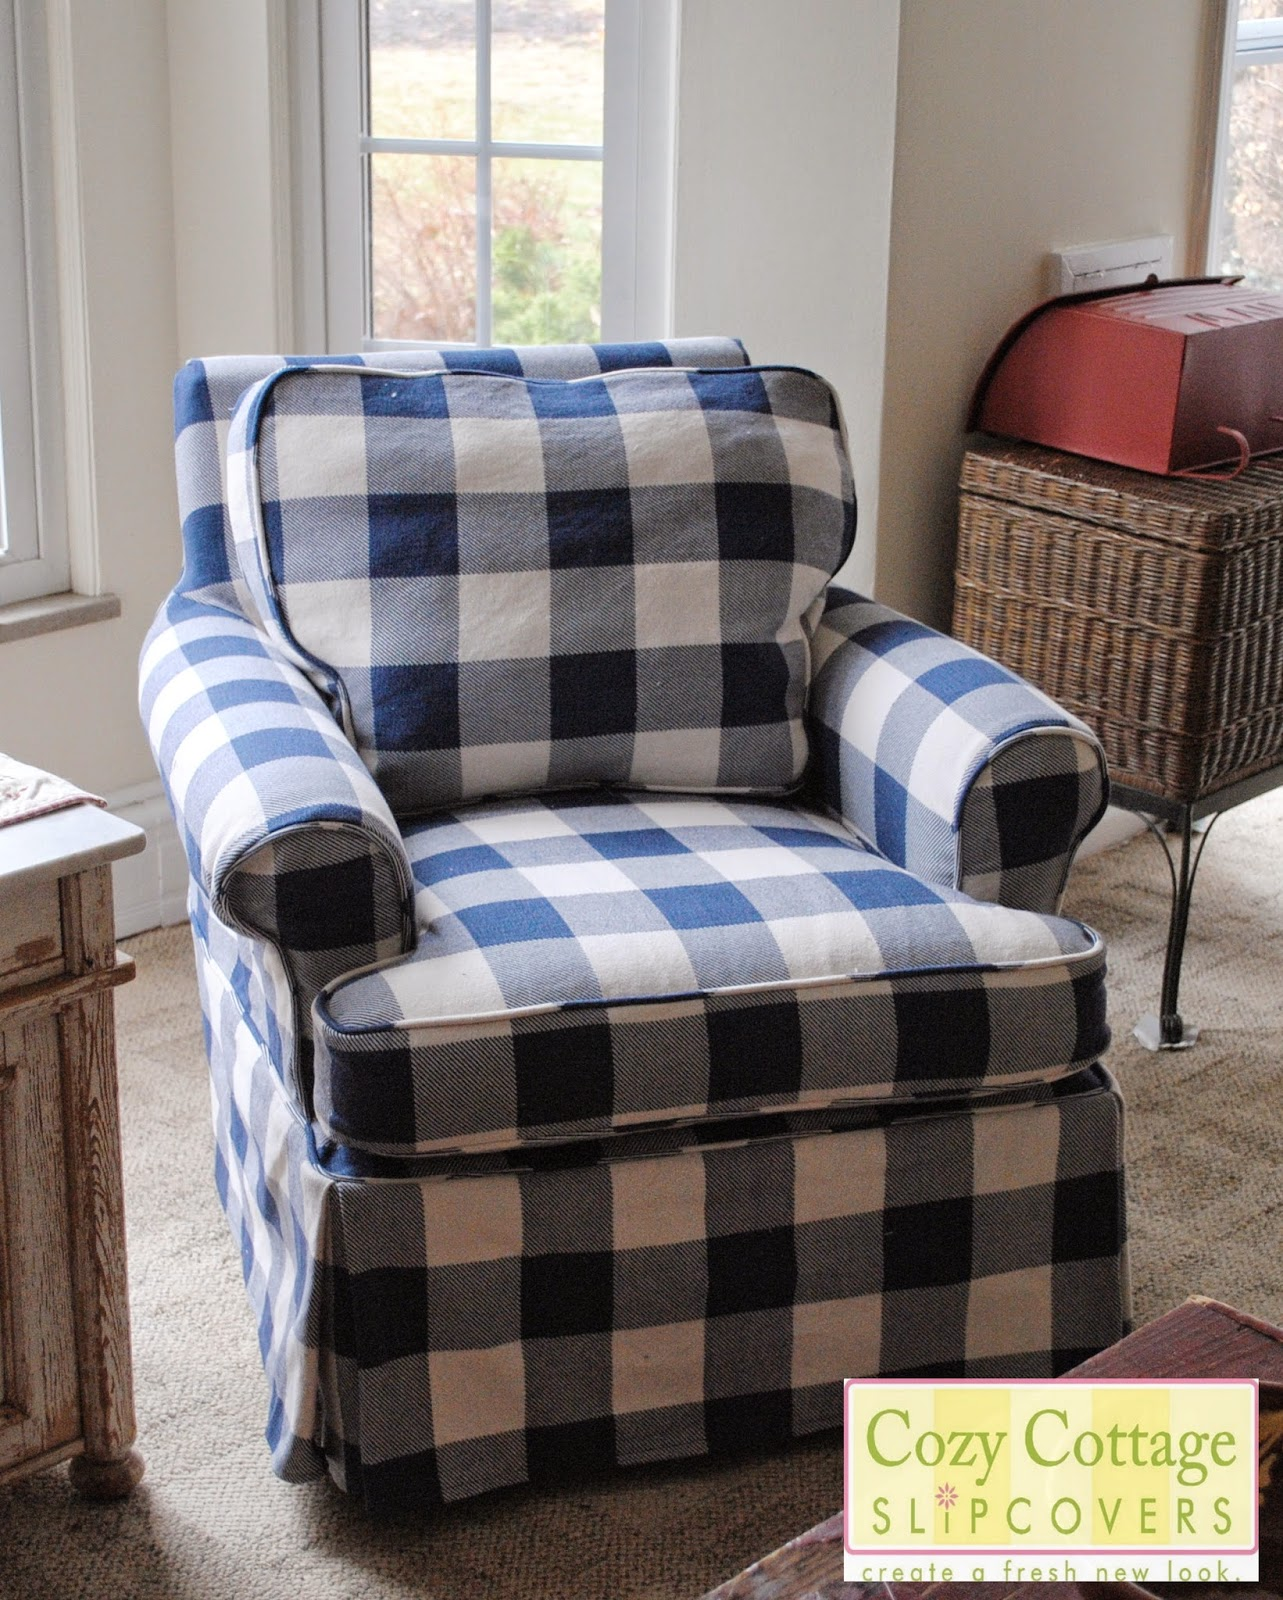 Cozy Cottage Slipcovers Blue And White Buffalo Check